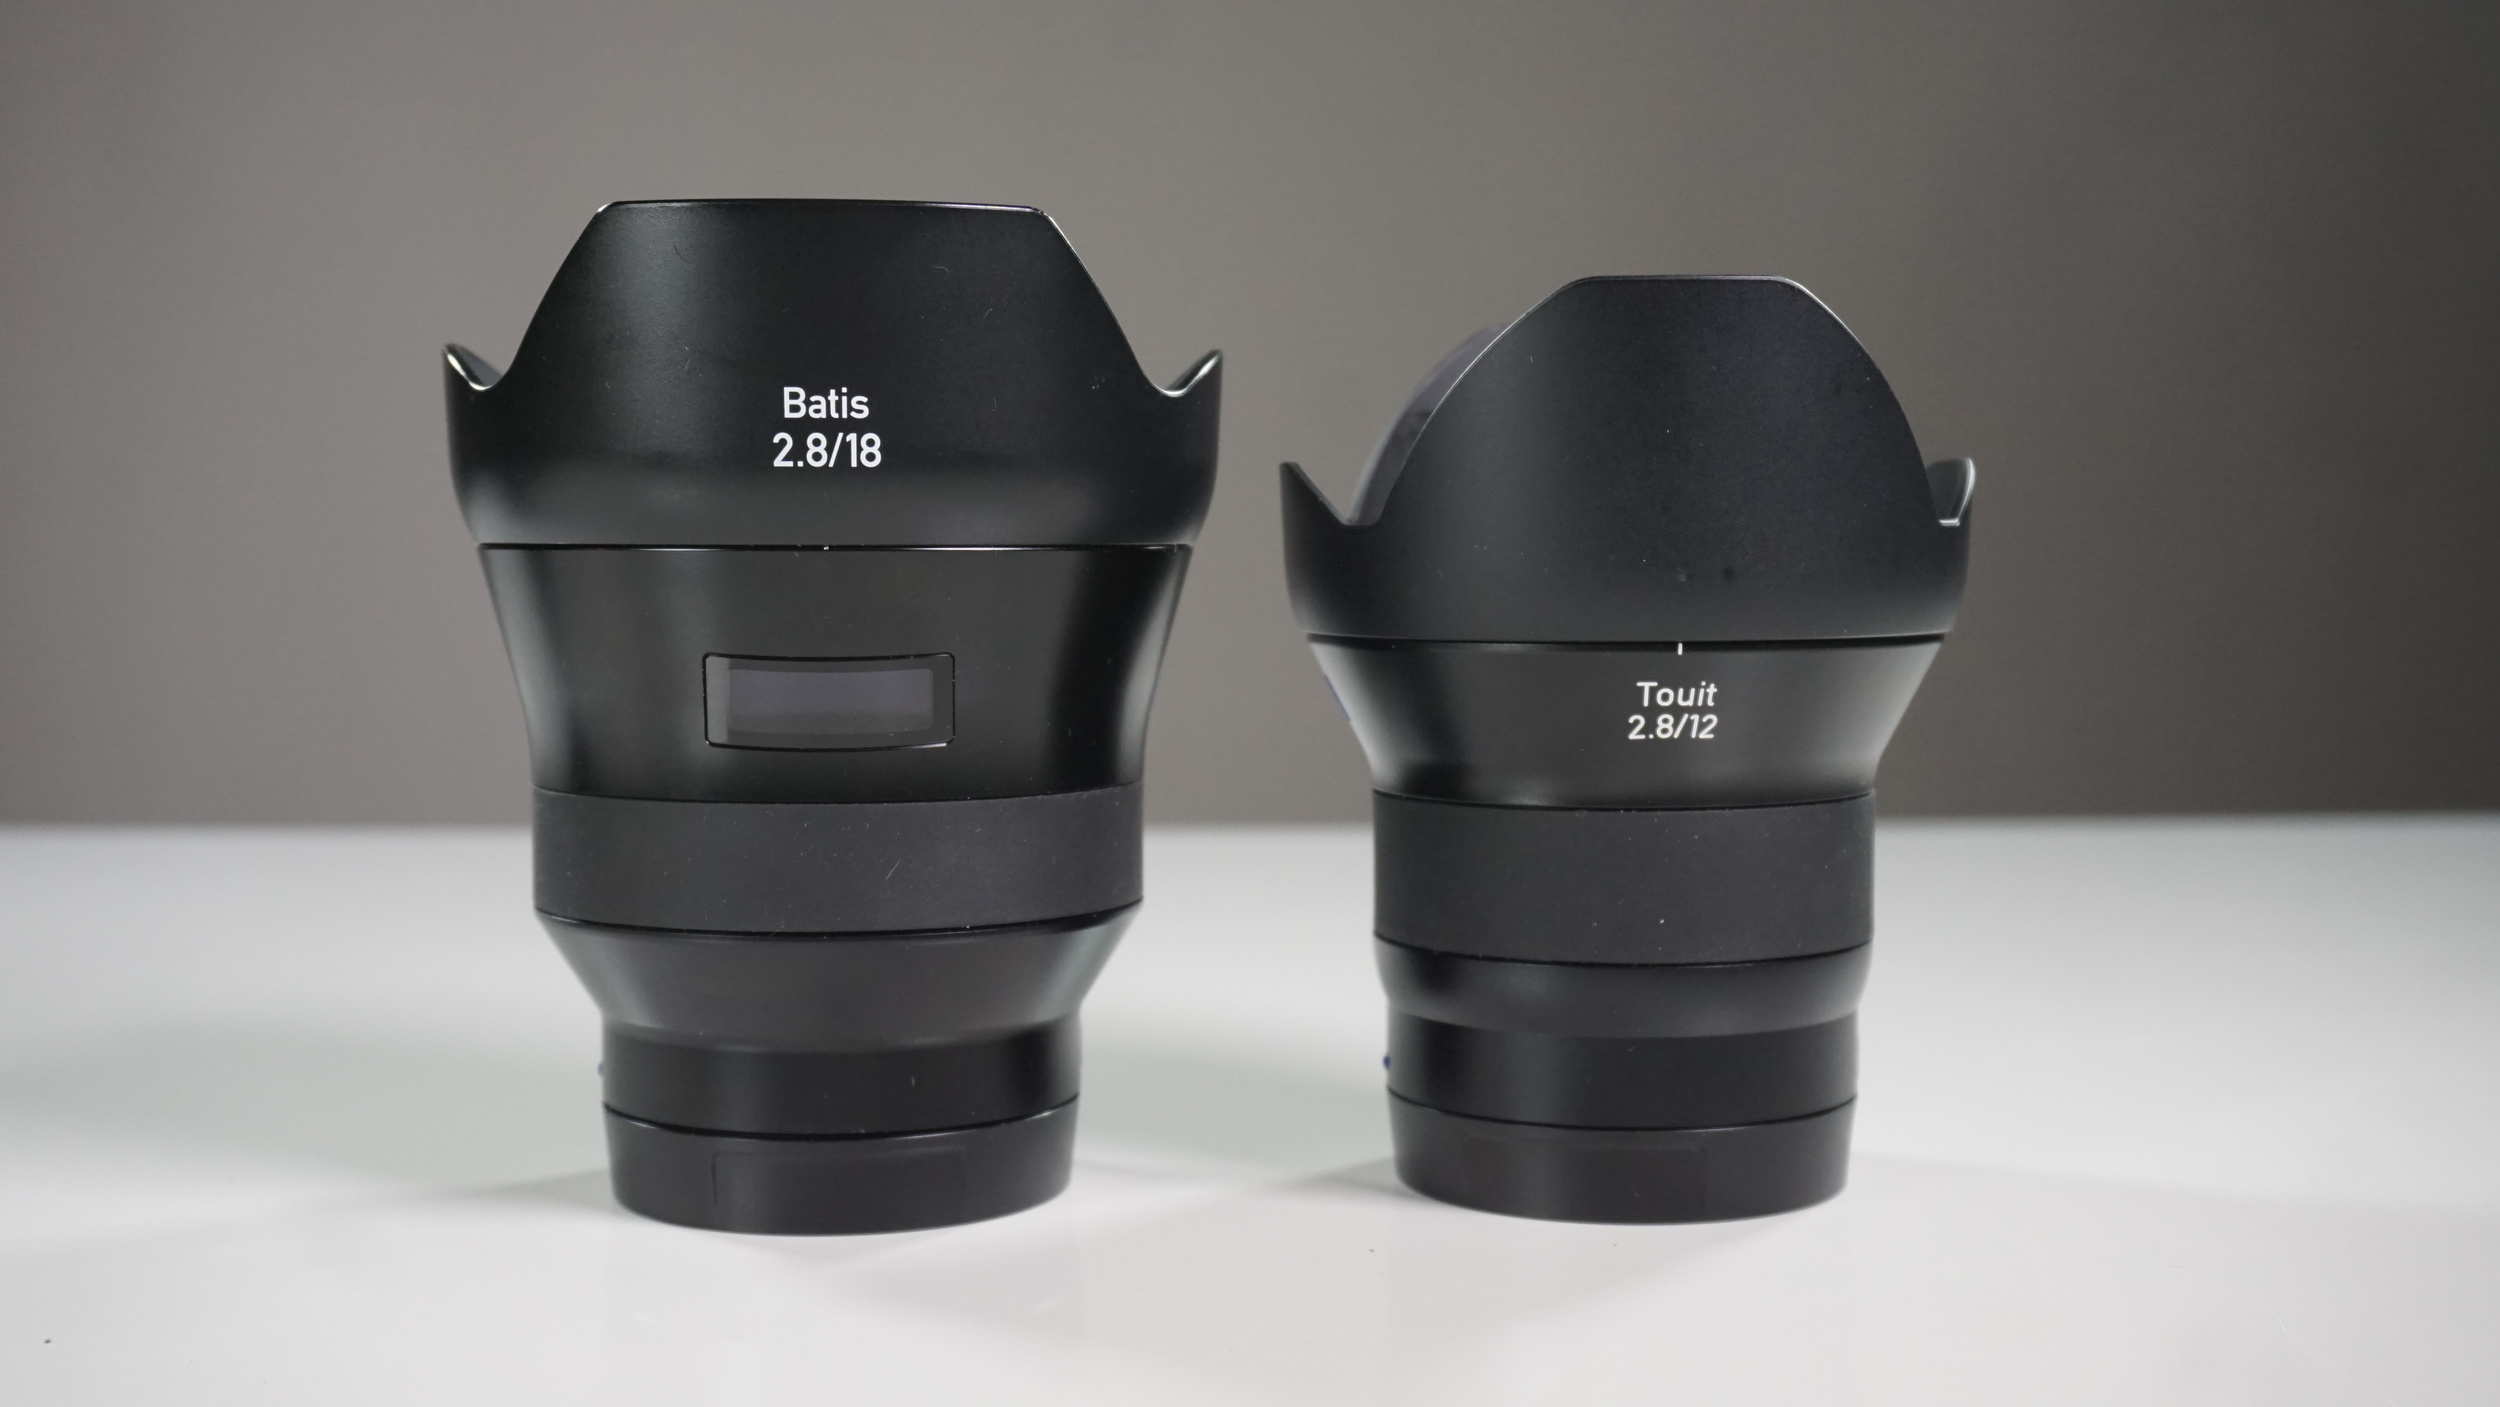 The full-frame Batis 18mm f/2.8 on an a7r II has the same field of view as its little brother Touit 12mm f/2.8 on the a6300. Other than the OLED display and without them being next to each other, it would be tough to tell them apart at first glance.